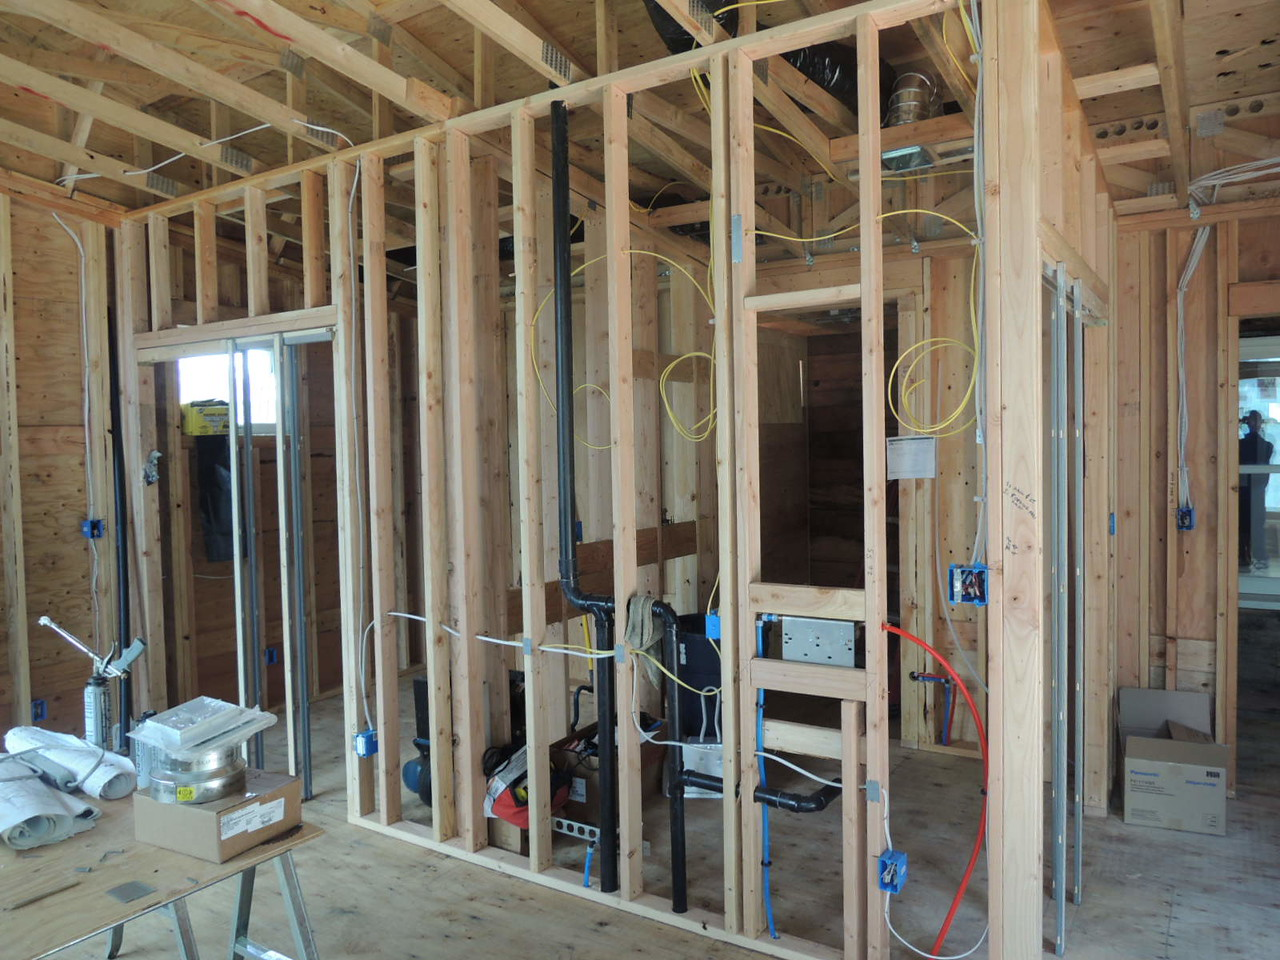 Master bedroom and bathroom framed up, plumbing and electrical roughed in.